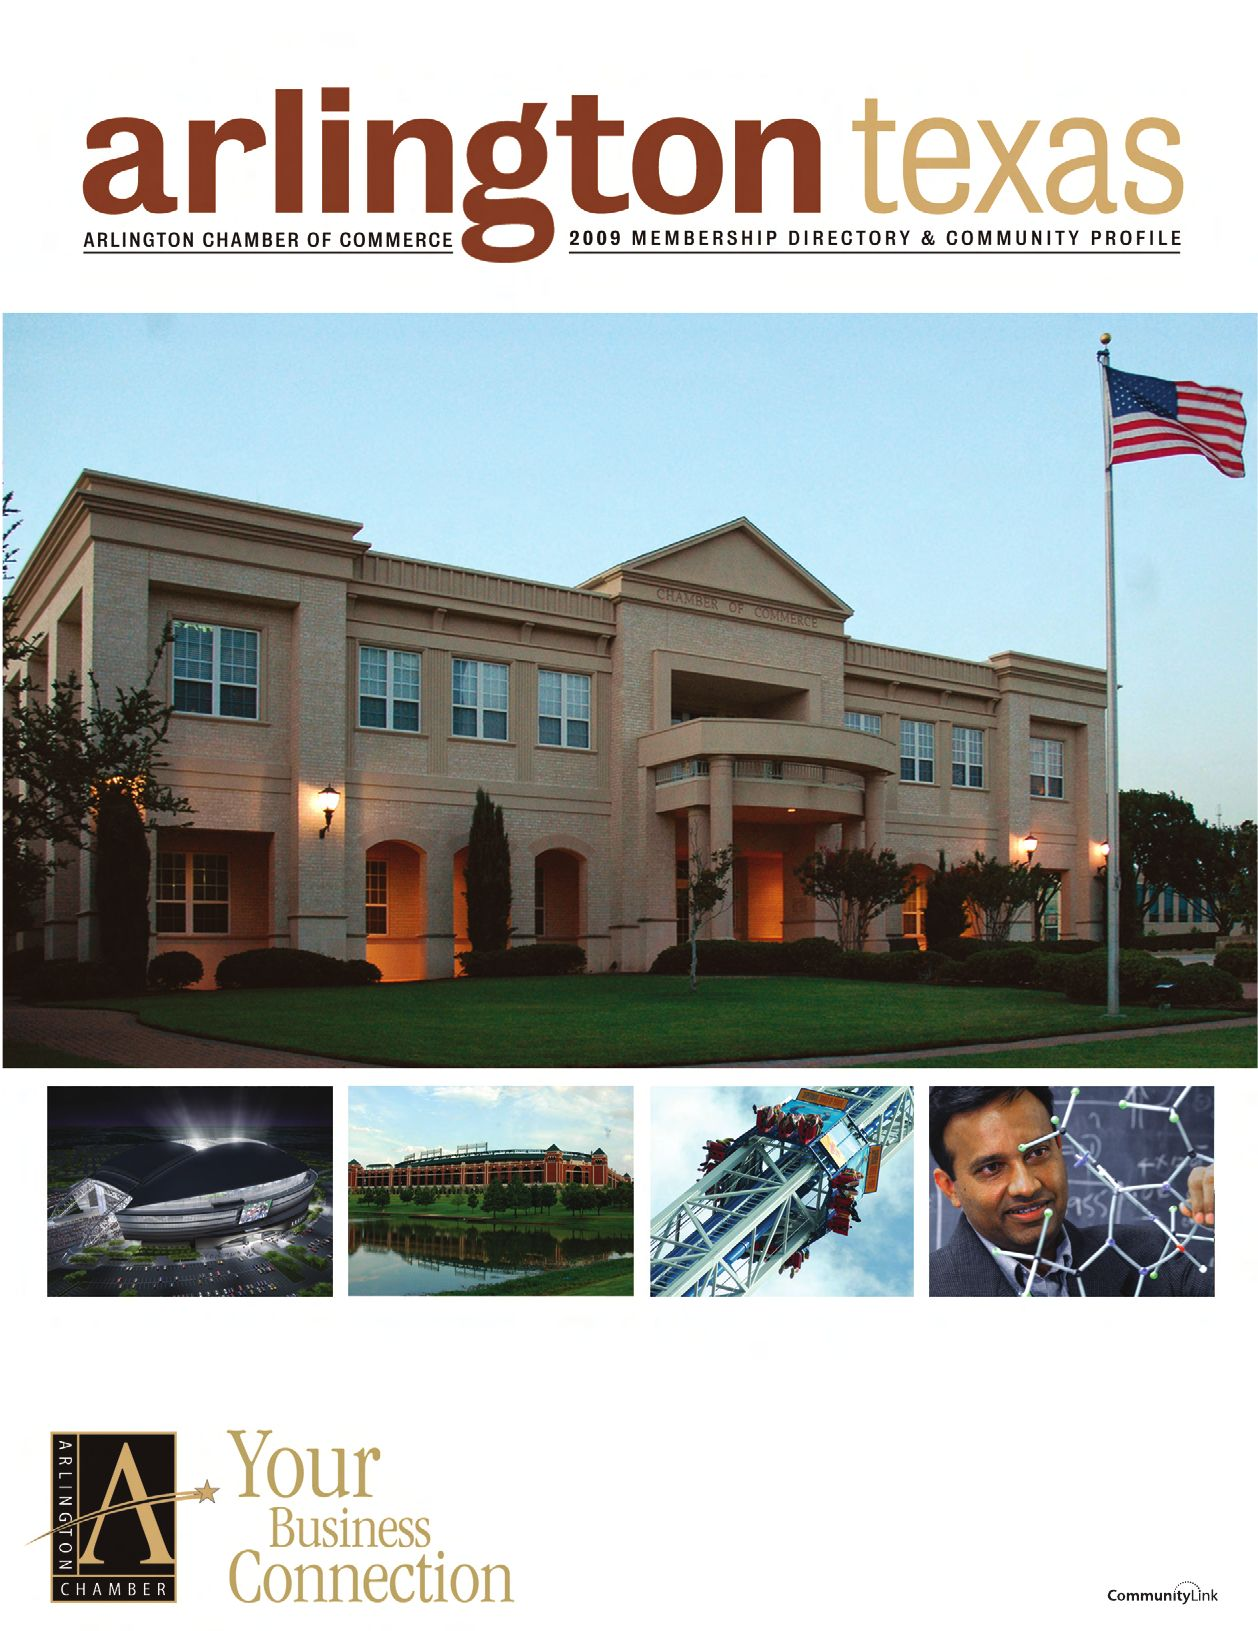 arlington tx membership directory and community profile by arlington tx 2009 membership directory and community profile